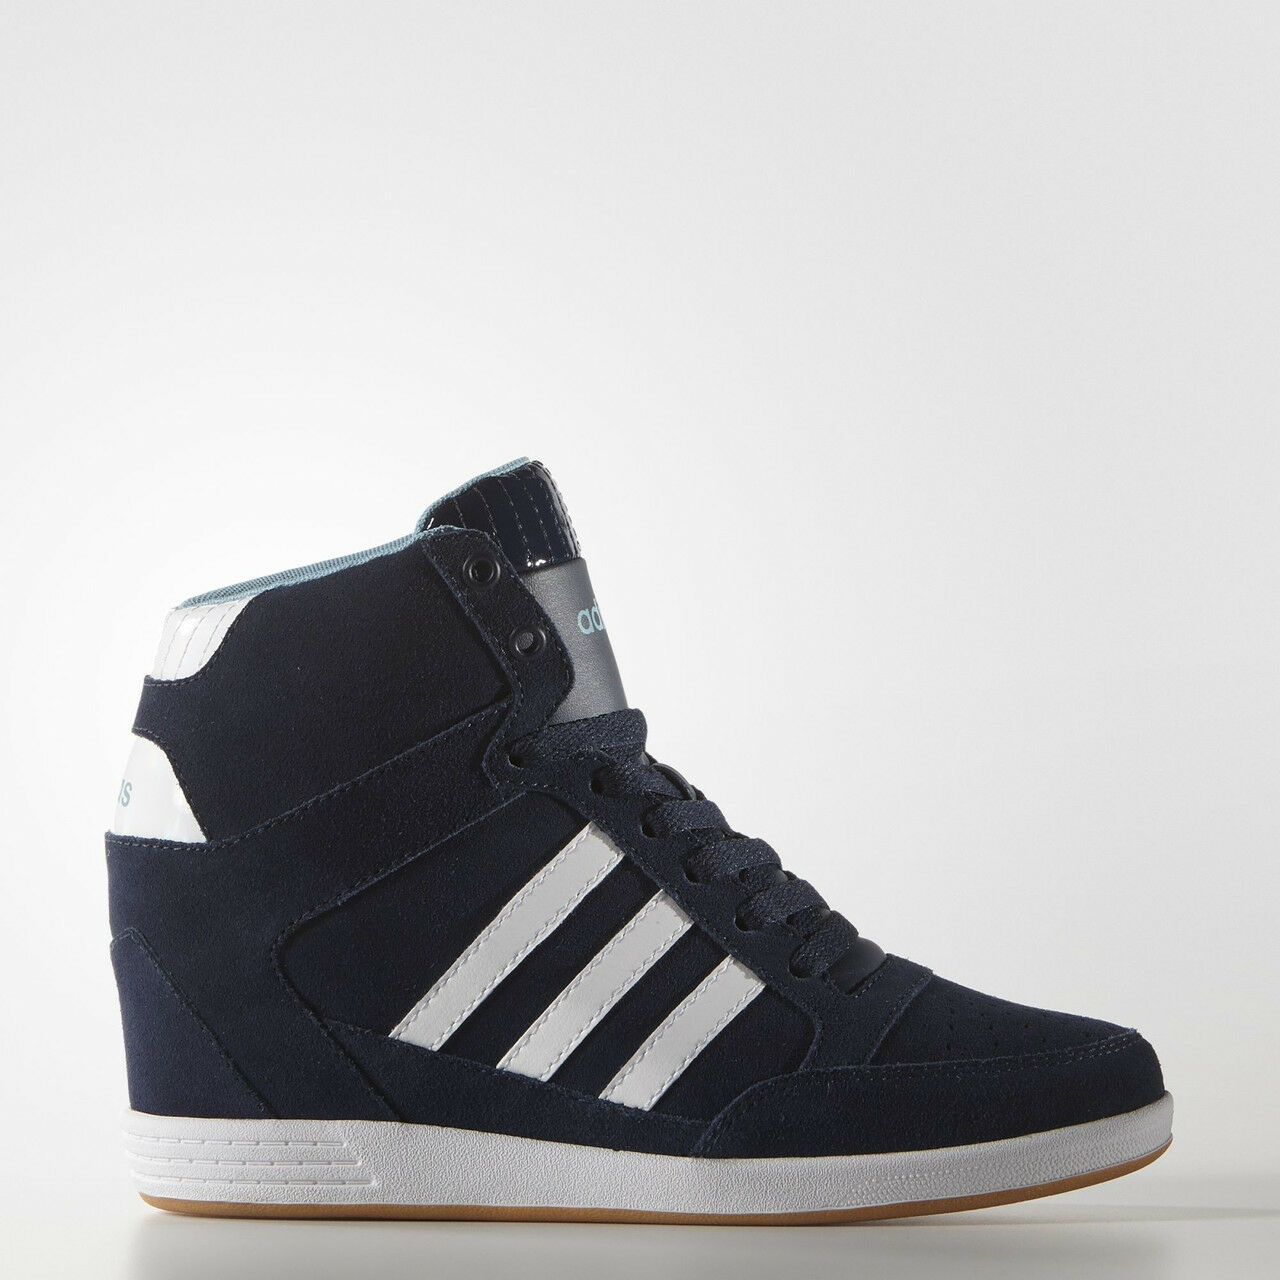 ADIDAS HIGH TOP blueE COMFORT SUEDE WEDGE SHOES SHOES SHOES BOOTS WALKING AW4847 NIB PRM f13f15